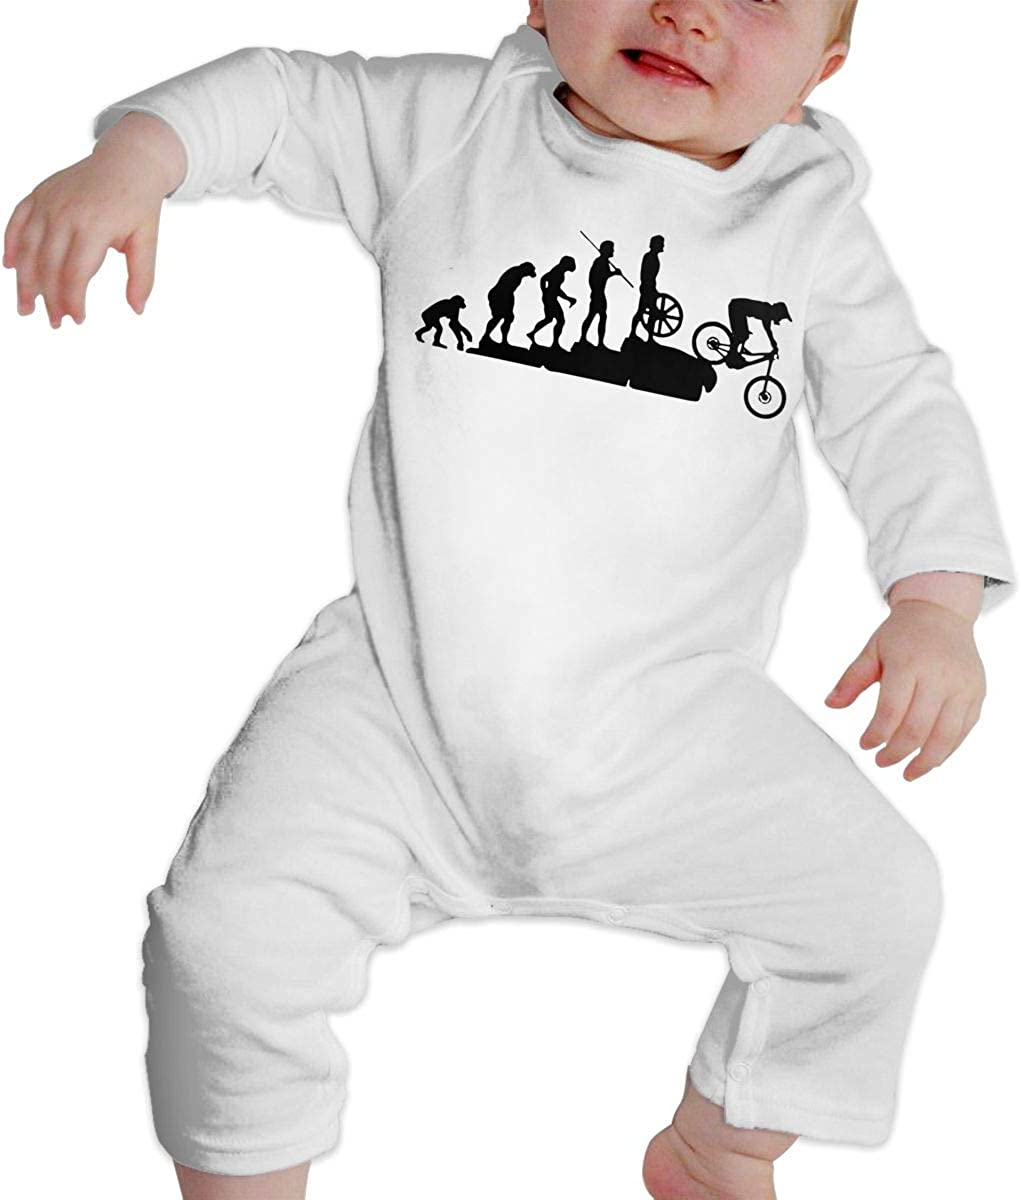 YELTY6F Interesting Mountain Bike Downhill Car Printed Baby One-Piece Suit Long Sleeve Pajamas White